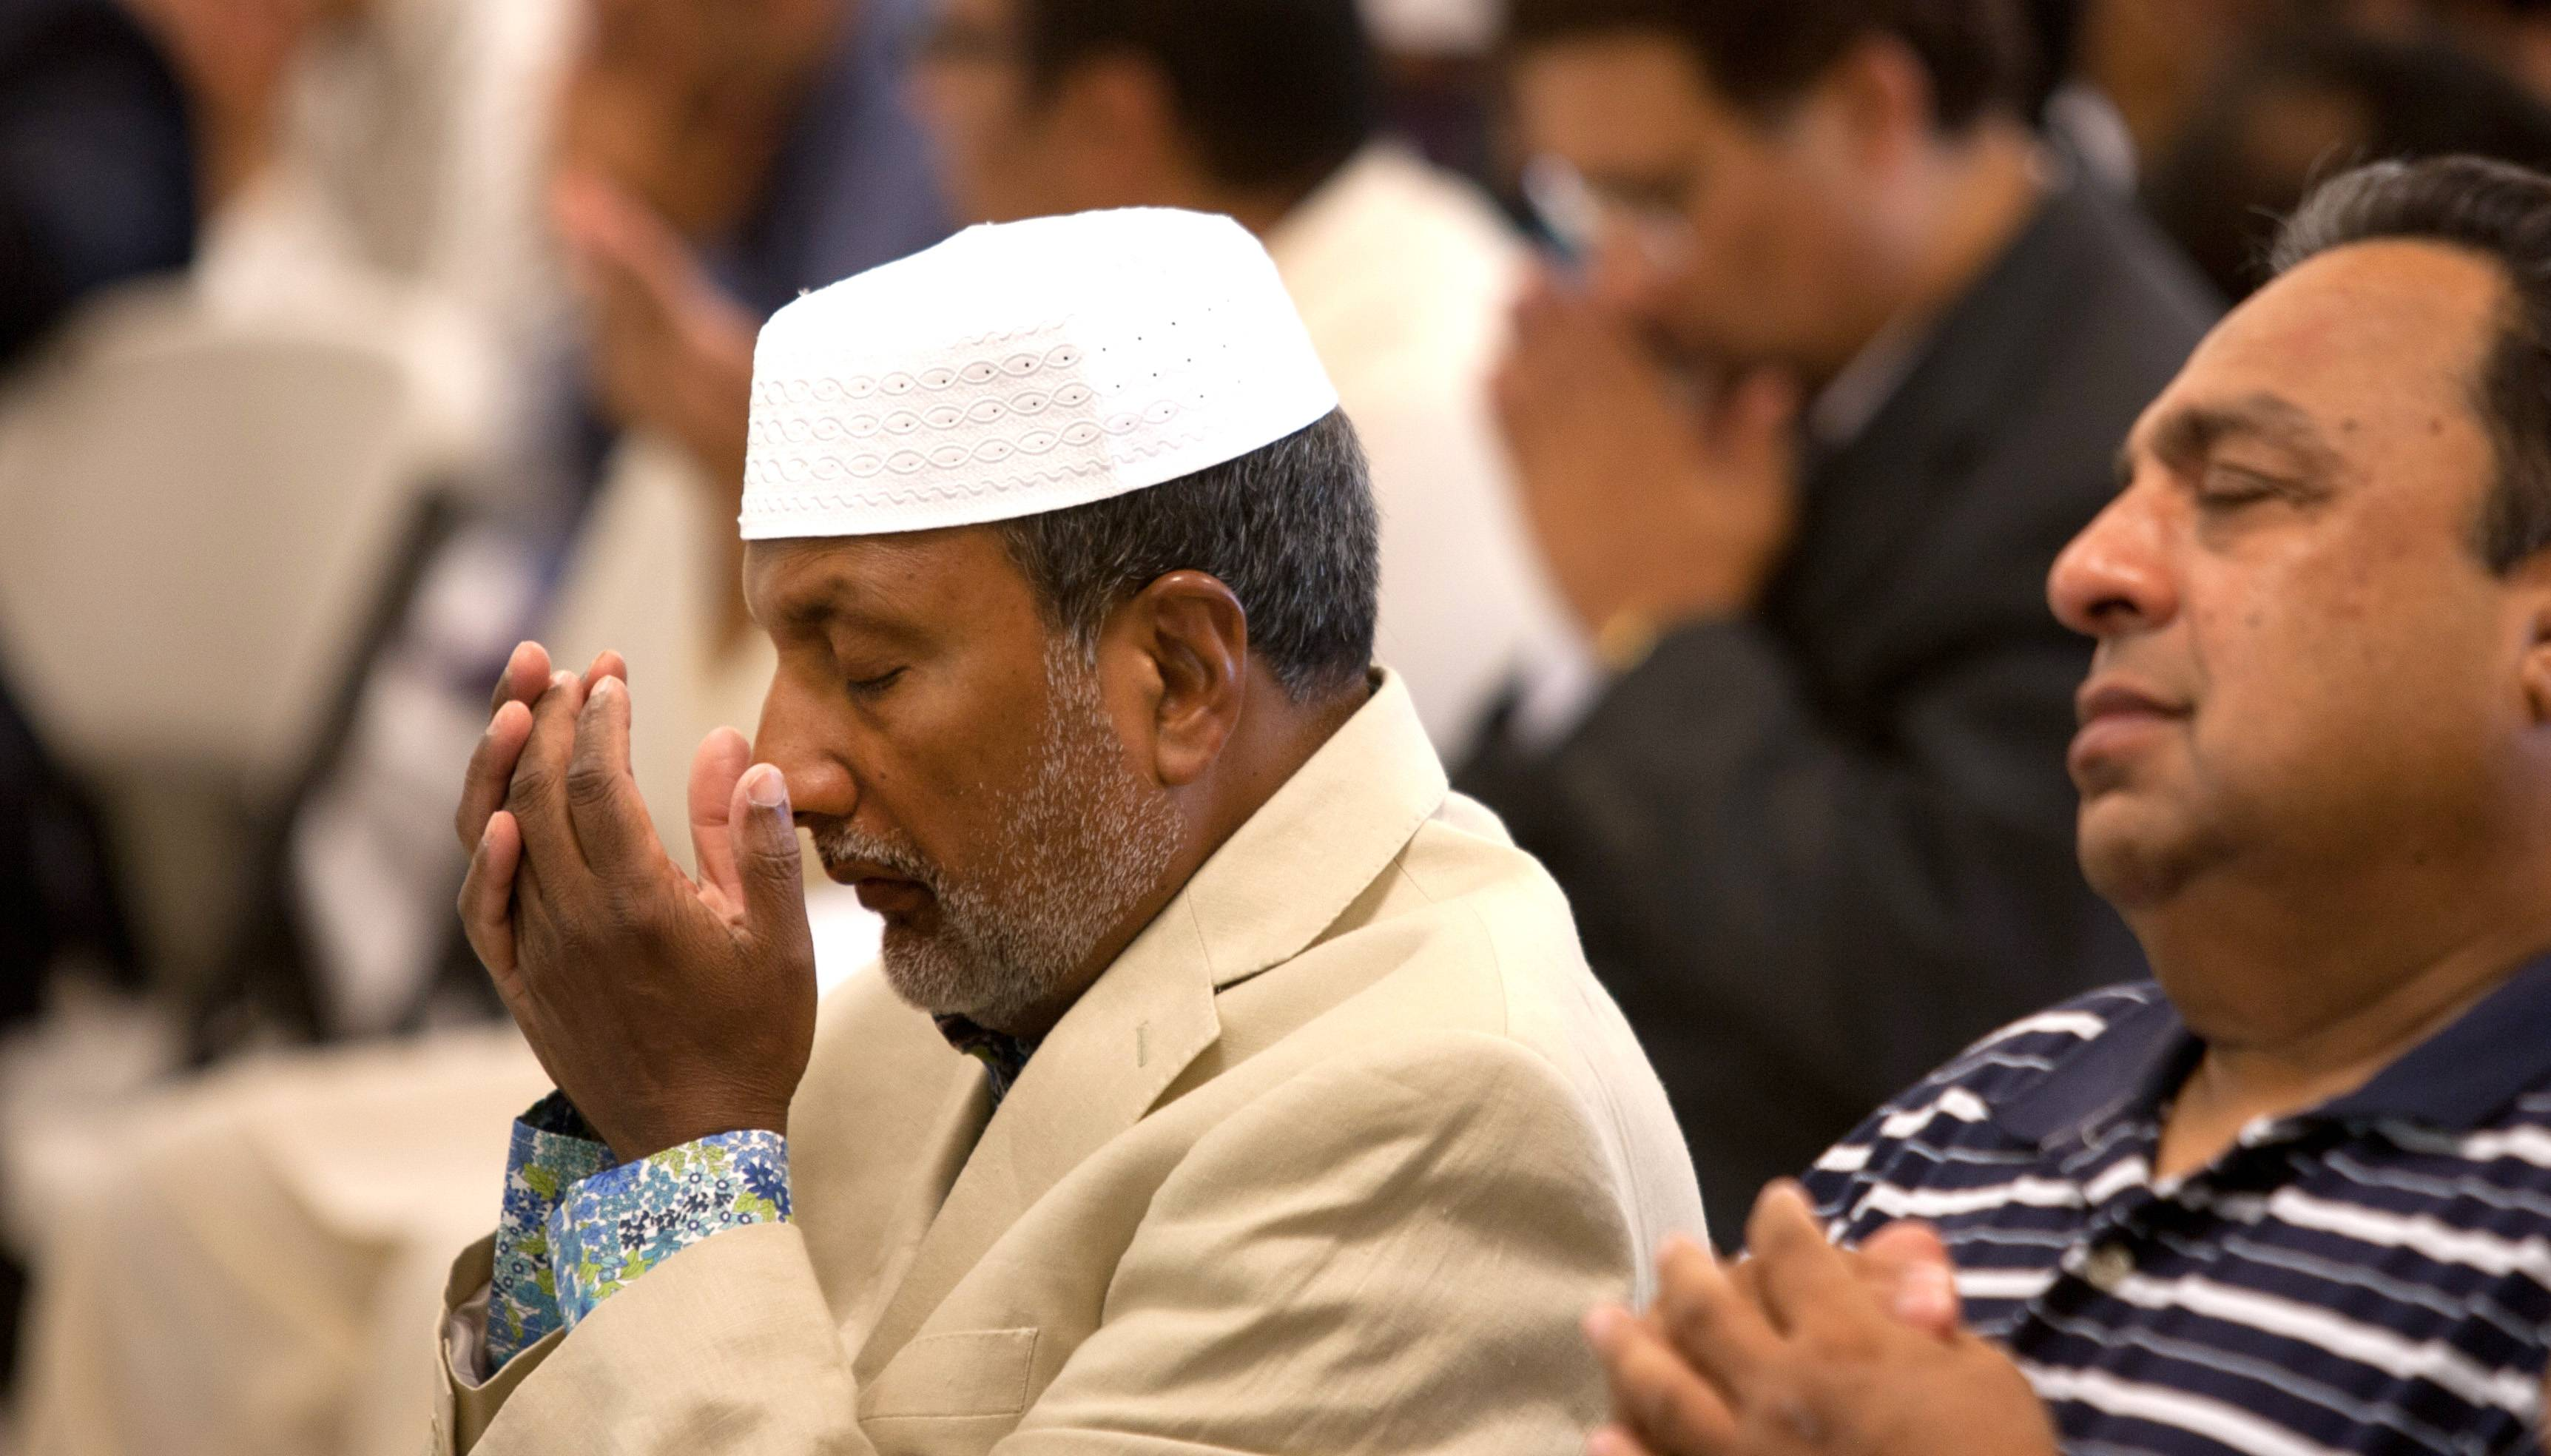 The Ahmadiyya Muslim Community prays and celebrates the end of Ramadan at their Glen Ellyn mosque.